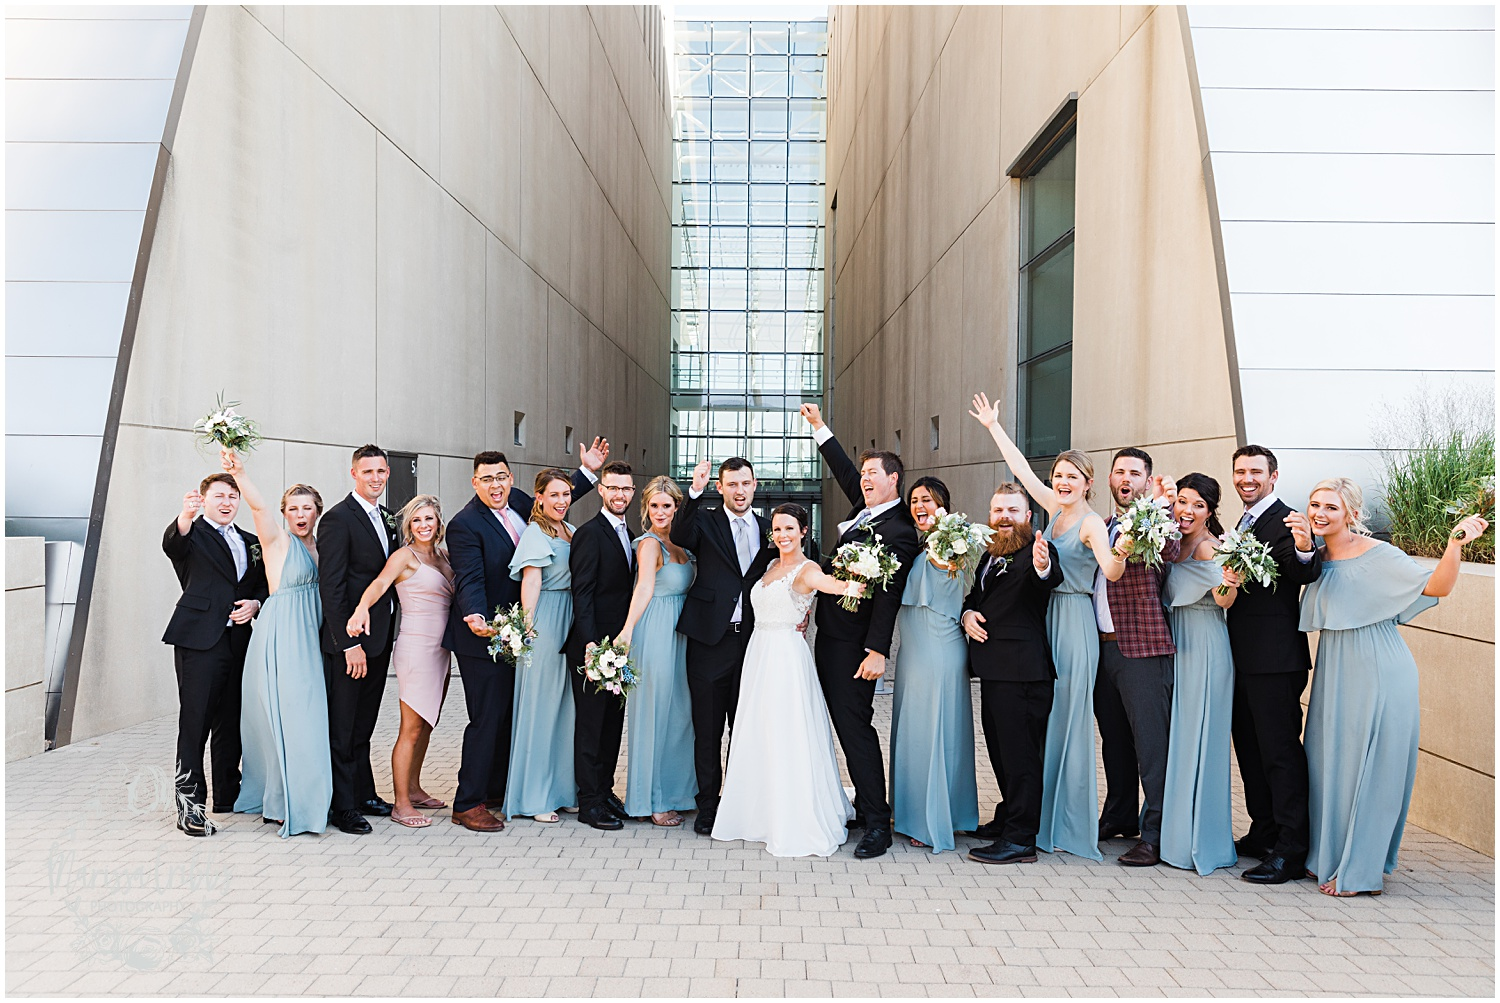 KELLY & MITCH MARRIED BLOG | MARISSA CRIBBS PHOTOGRAPHY | THE EVERLY EVENT SPACE_8882.jpg